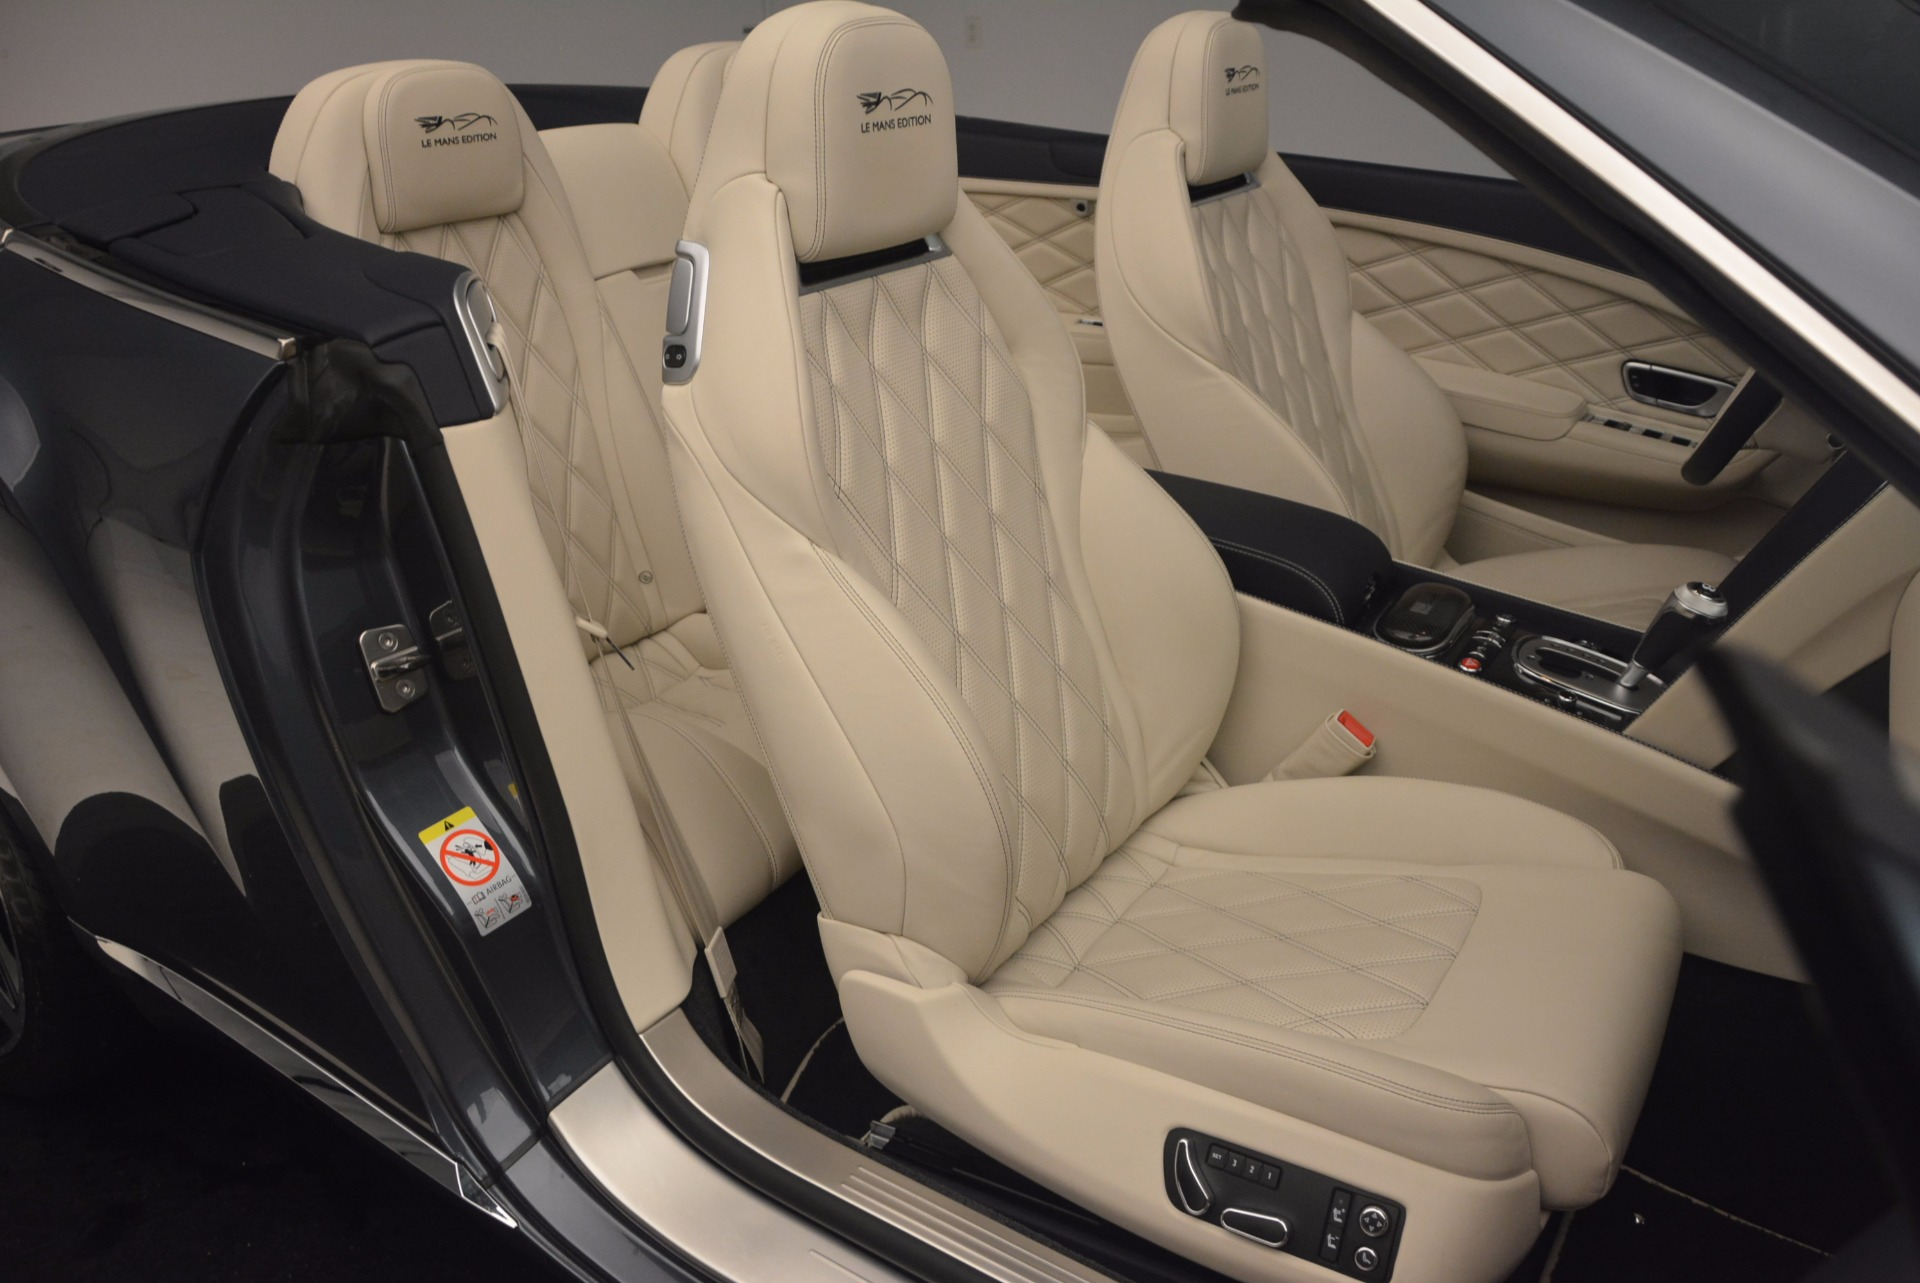 Used 2013 Bentley Continental GT V8 Le Mans Edition, 1 of 48 For Sale In Greenwich, CT 1288_p50